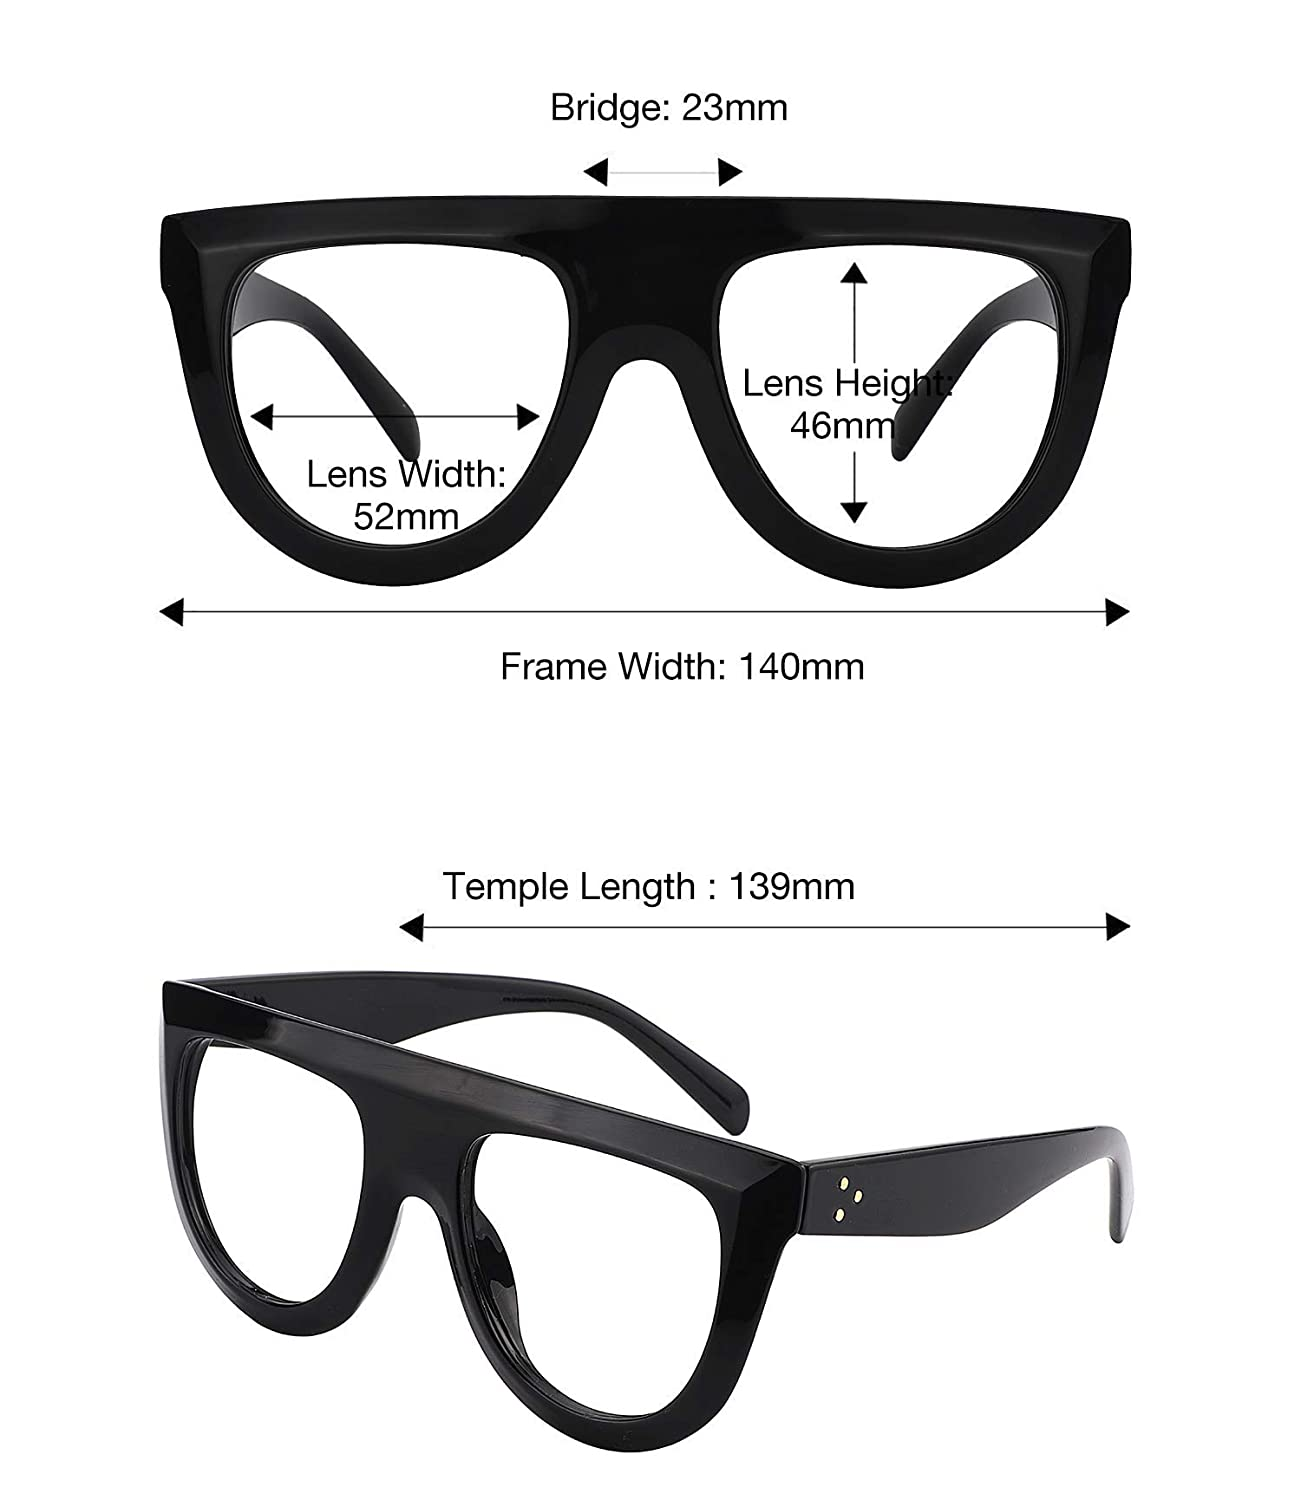 23c91de9d40 Amazon.com  Zeelool Fashion Thick Oversized Aviator Eyeglasses for Men  Non-prescription Black Eyewear Frame with Clear Lens Jules FP0334-01   Clothing